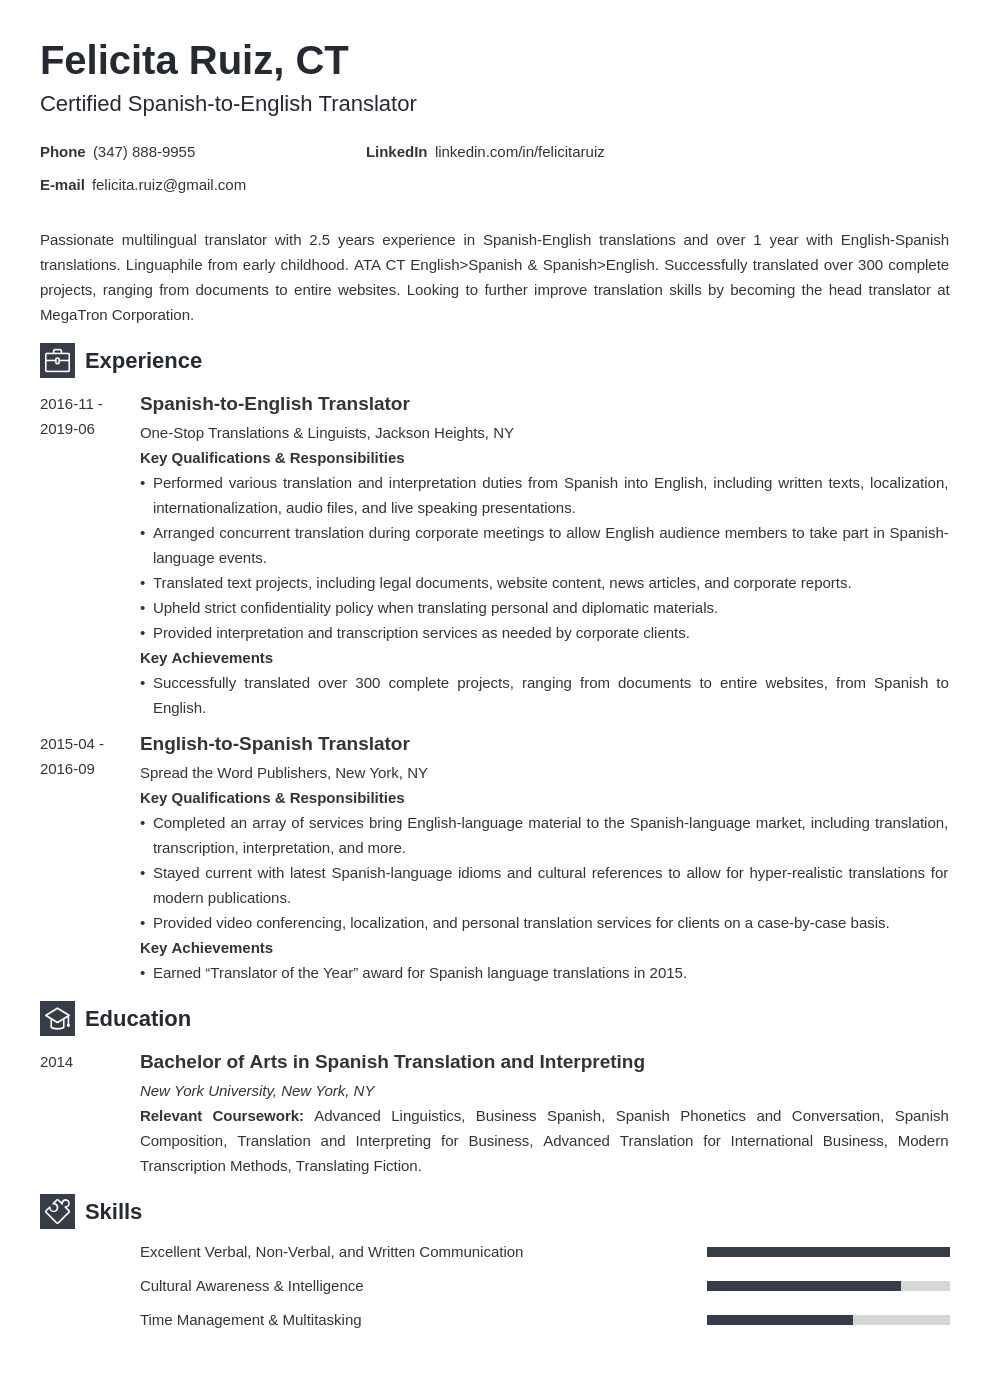 Spanish Cv Template from cdn-images.zety.com